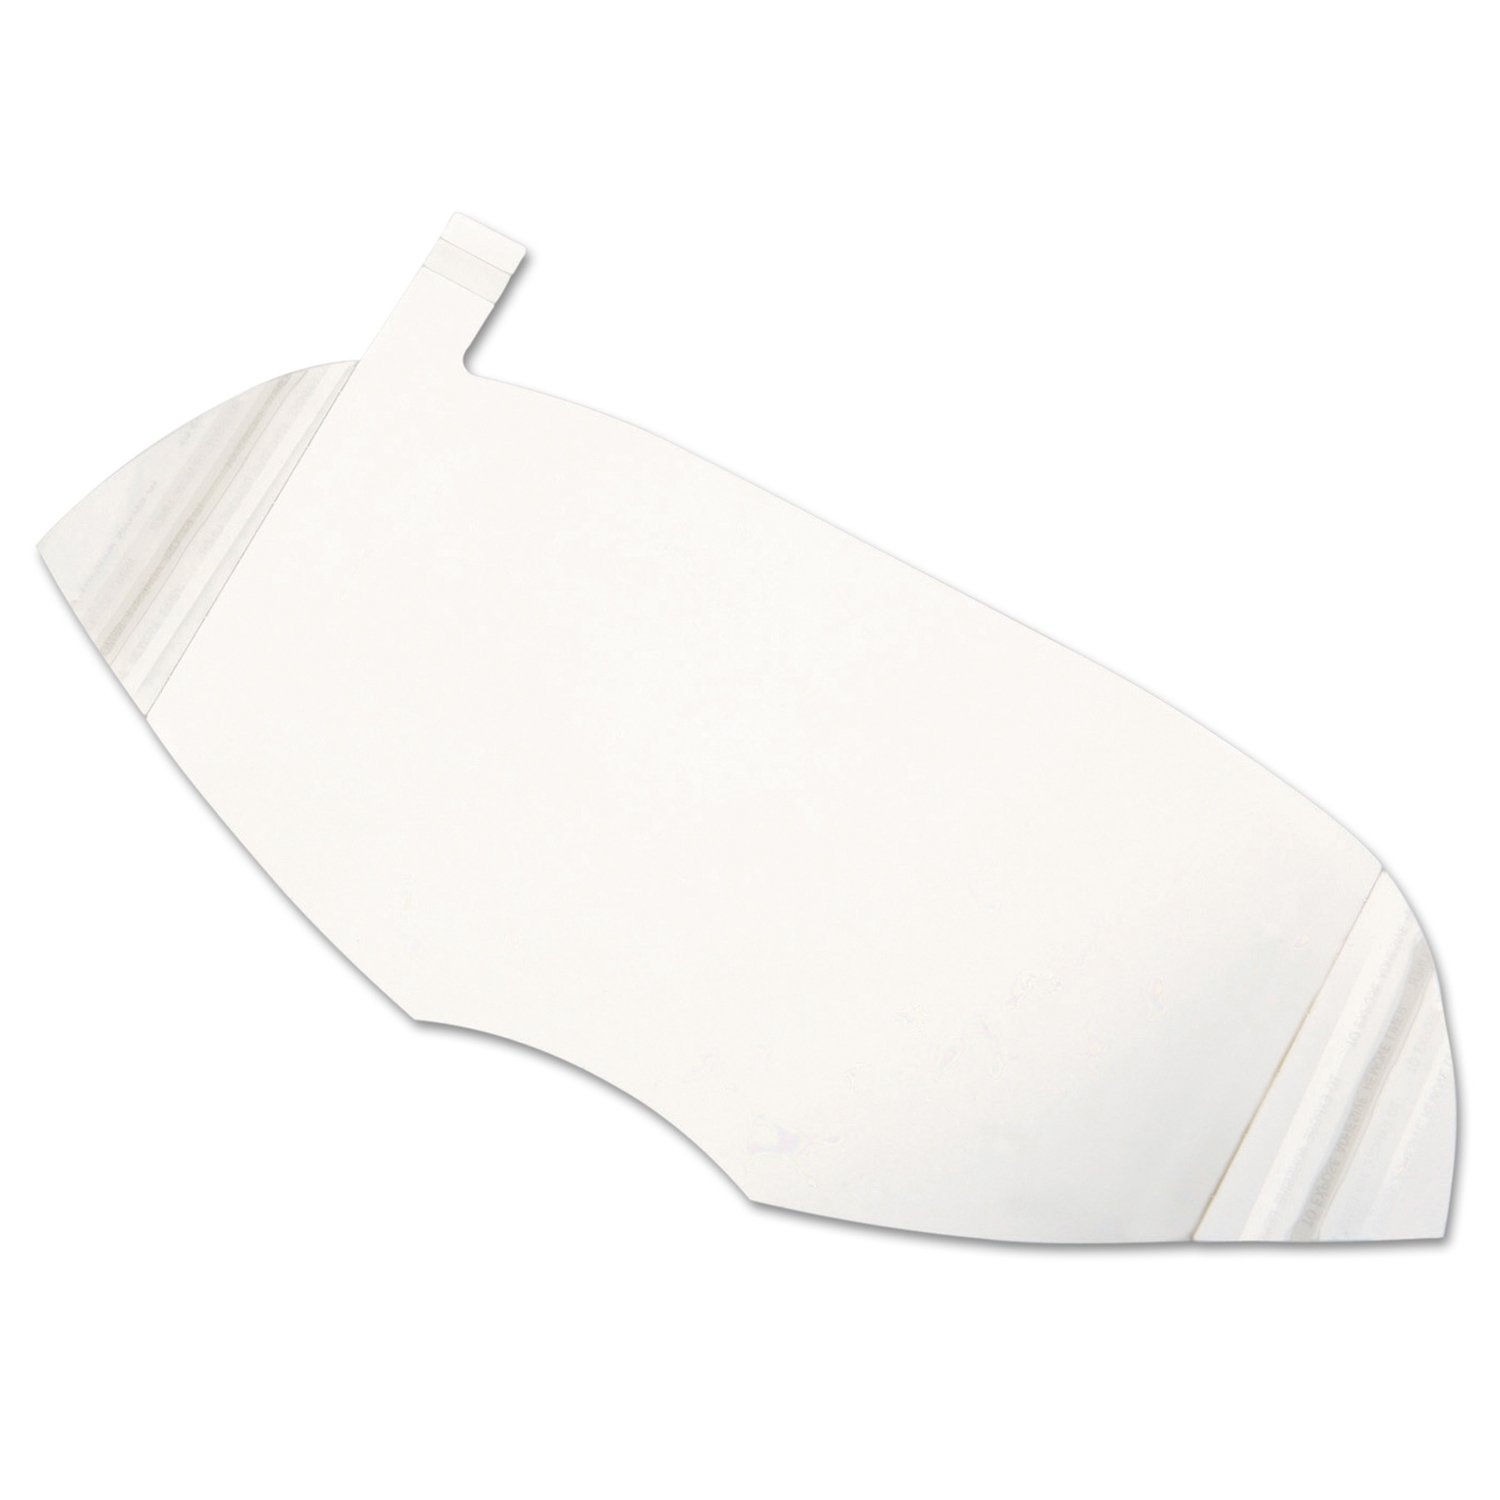 """North by Honeywell 80836A Peel Away Windows for Full Face Piece, North 5400, 7600 and 7800 Series, 6"""" 15/Pack"""